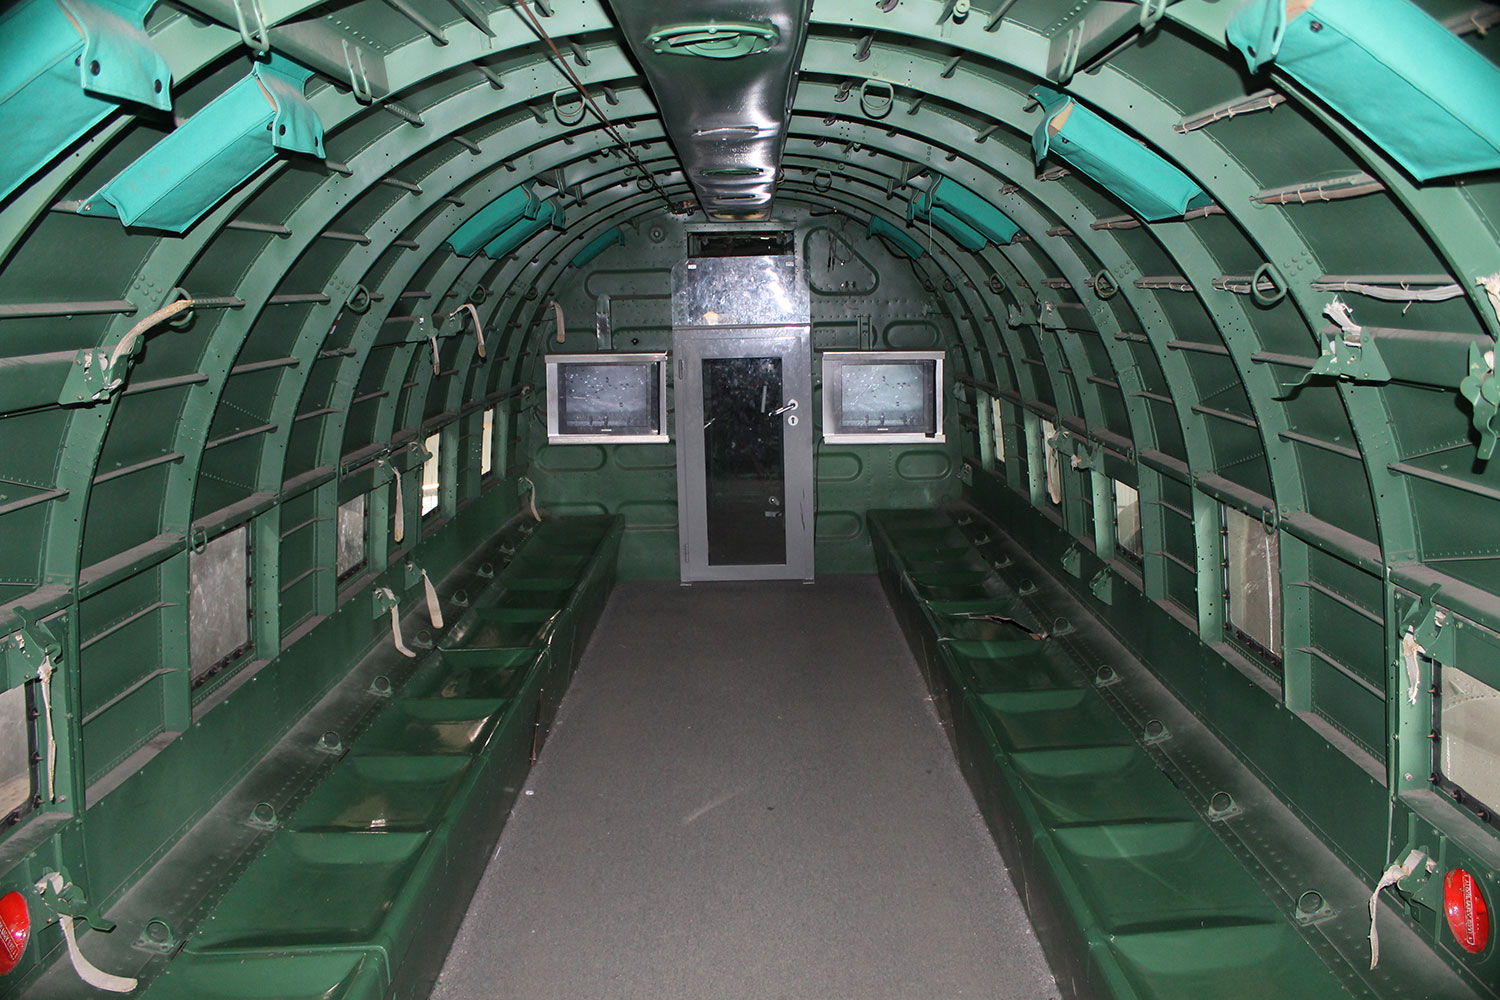 Inside C-47 at Paris Le Bourget